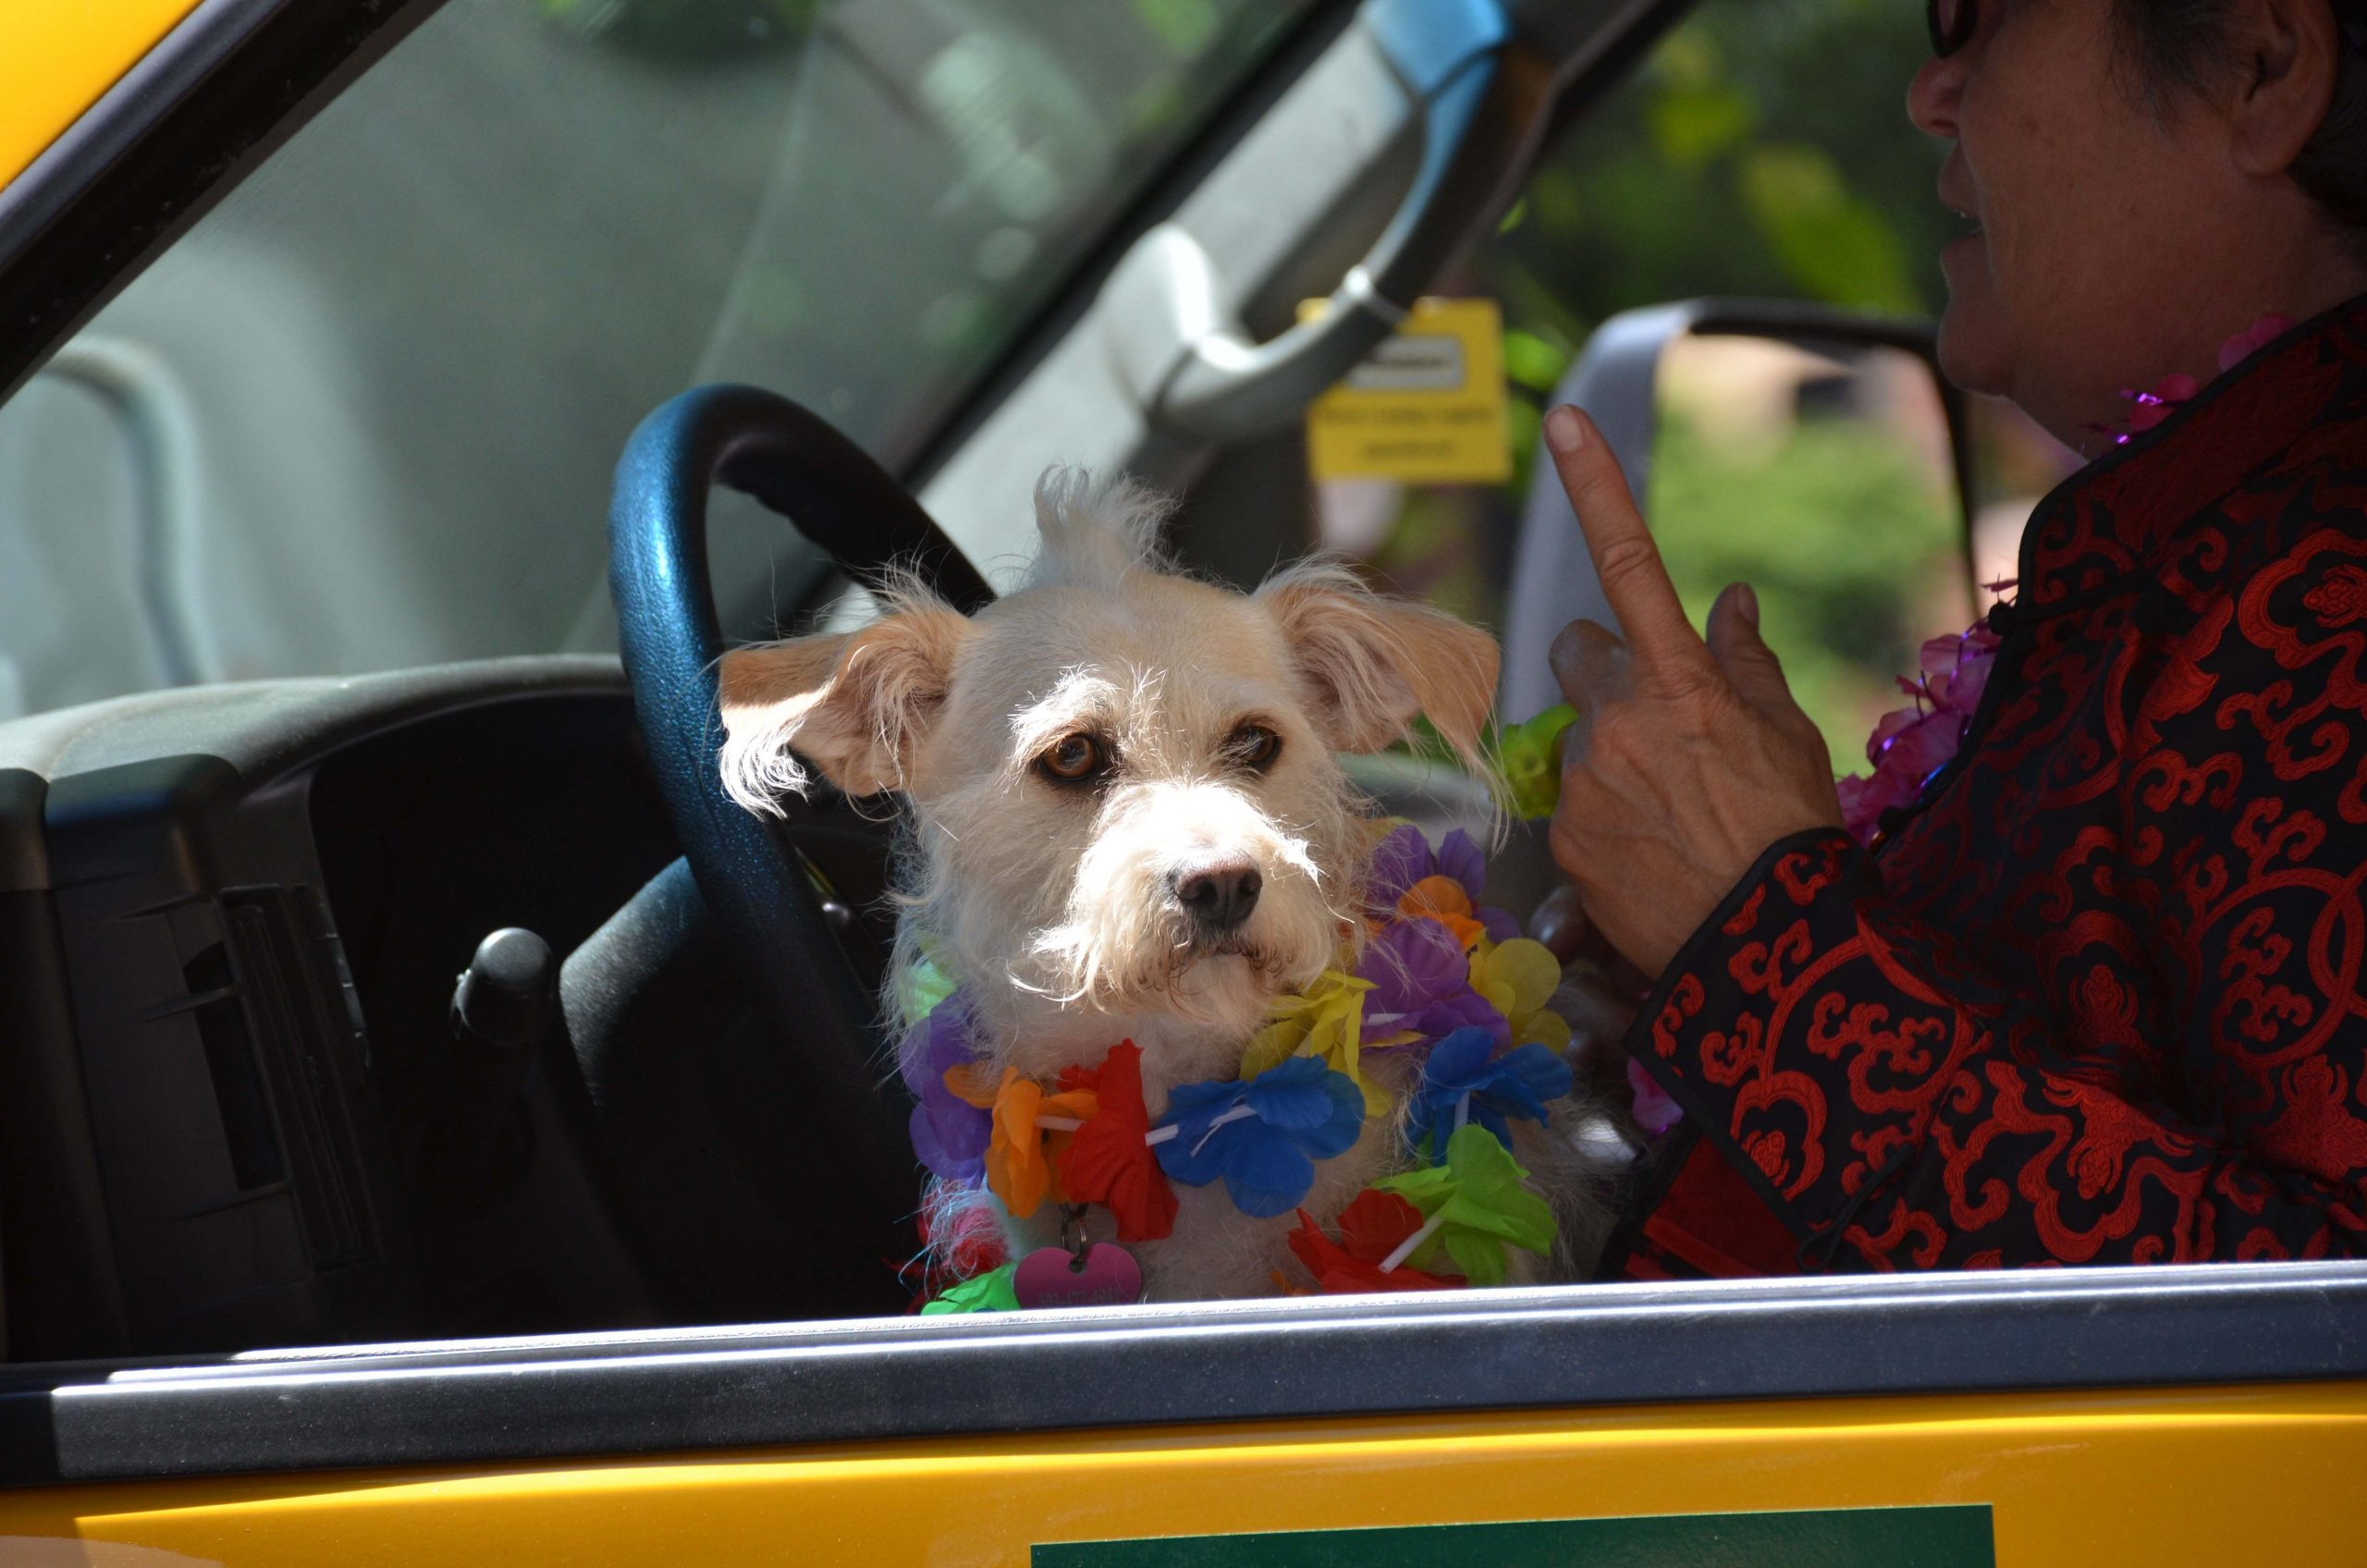 Pride Parade Puppy. Or maybe a mogwai. Not sure